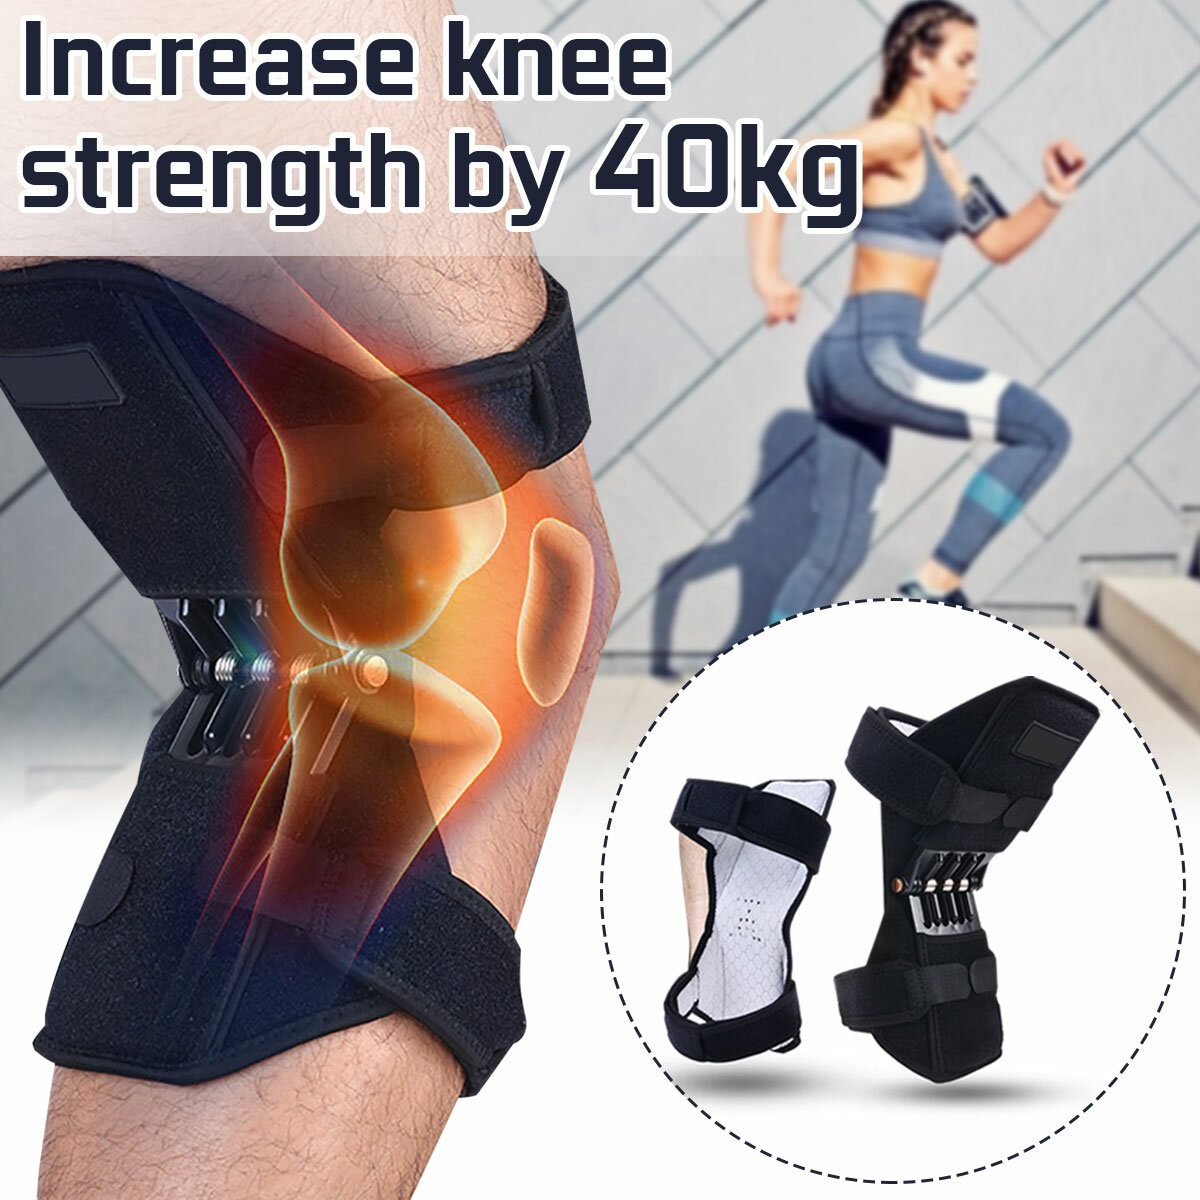 Power Knee Stabilizer Pads Rebound Force Support Knee Pad Adjustable Protector